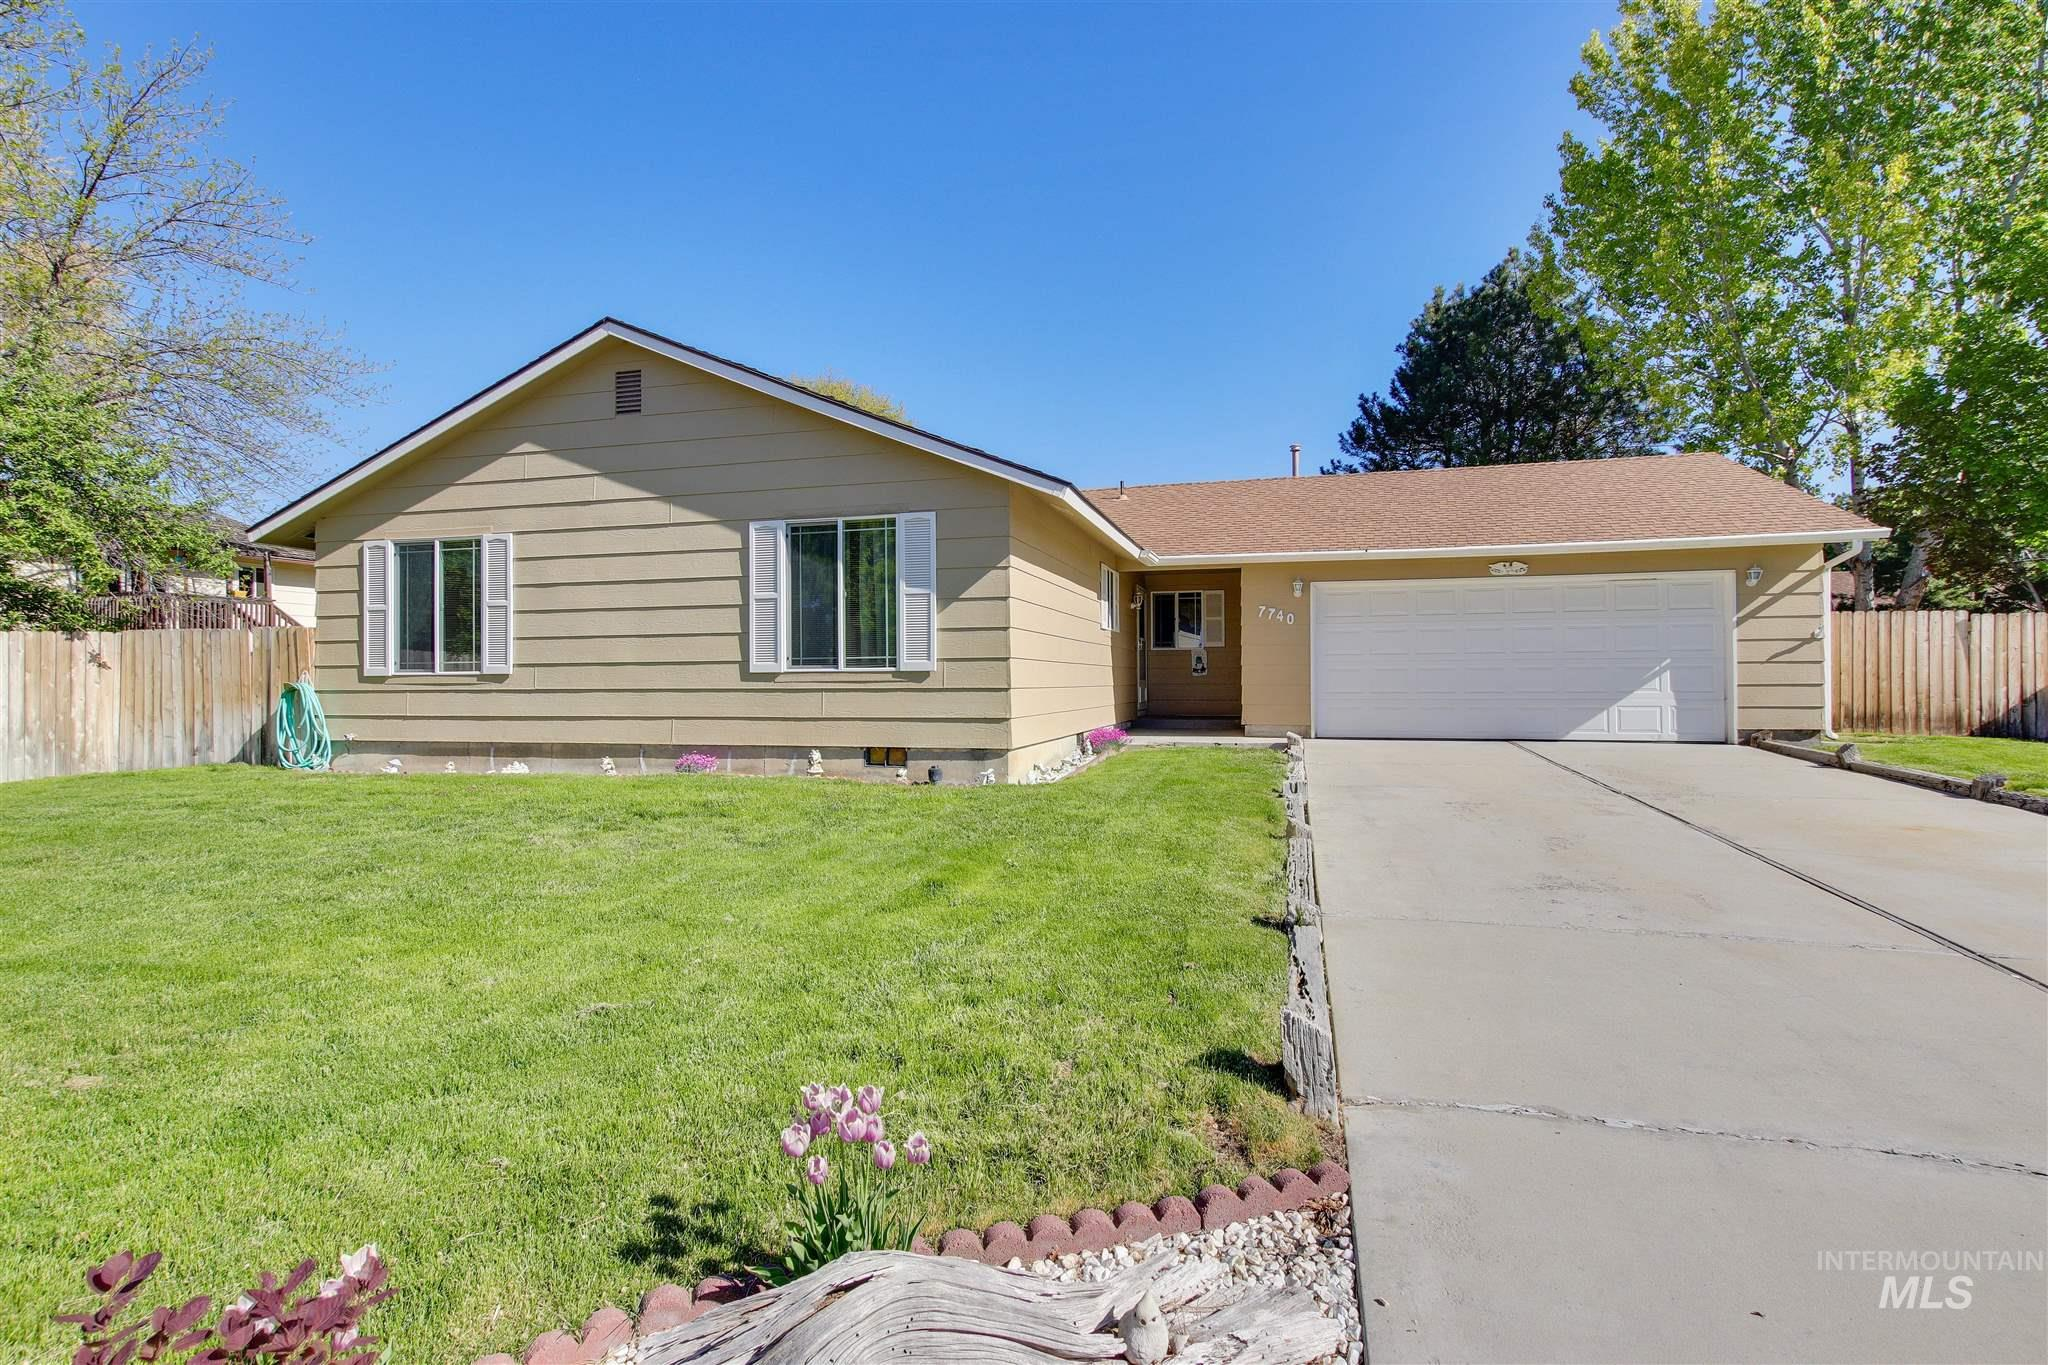 7740 W Tillamook St Property Photo - Boise, ID real estate listing